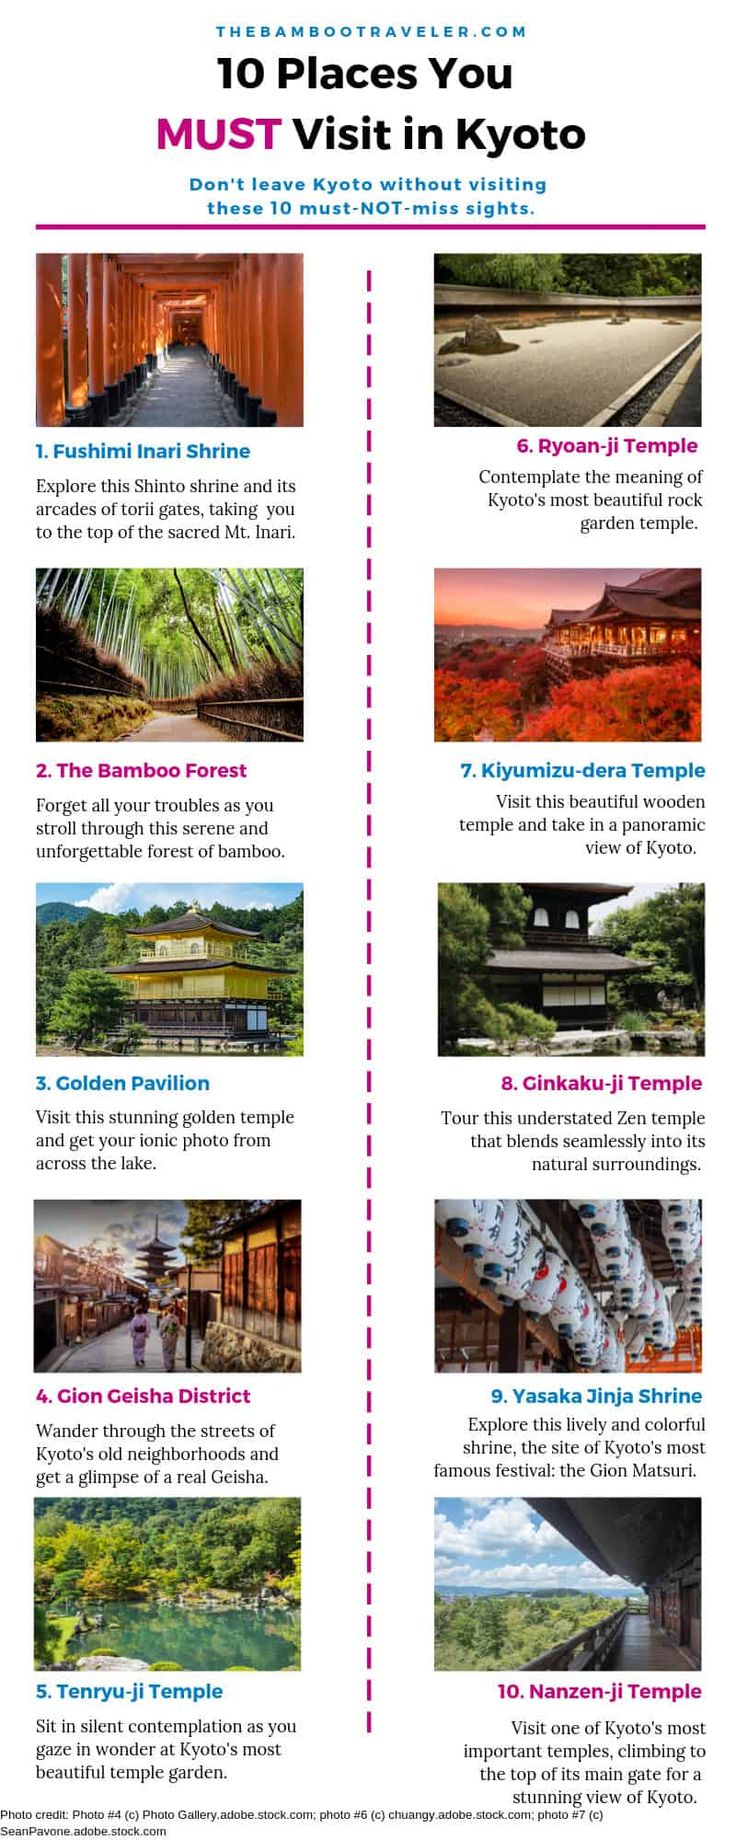 Top 10 Must-See Places to Visit in Kyoto